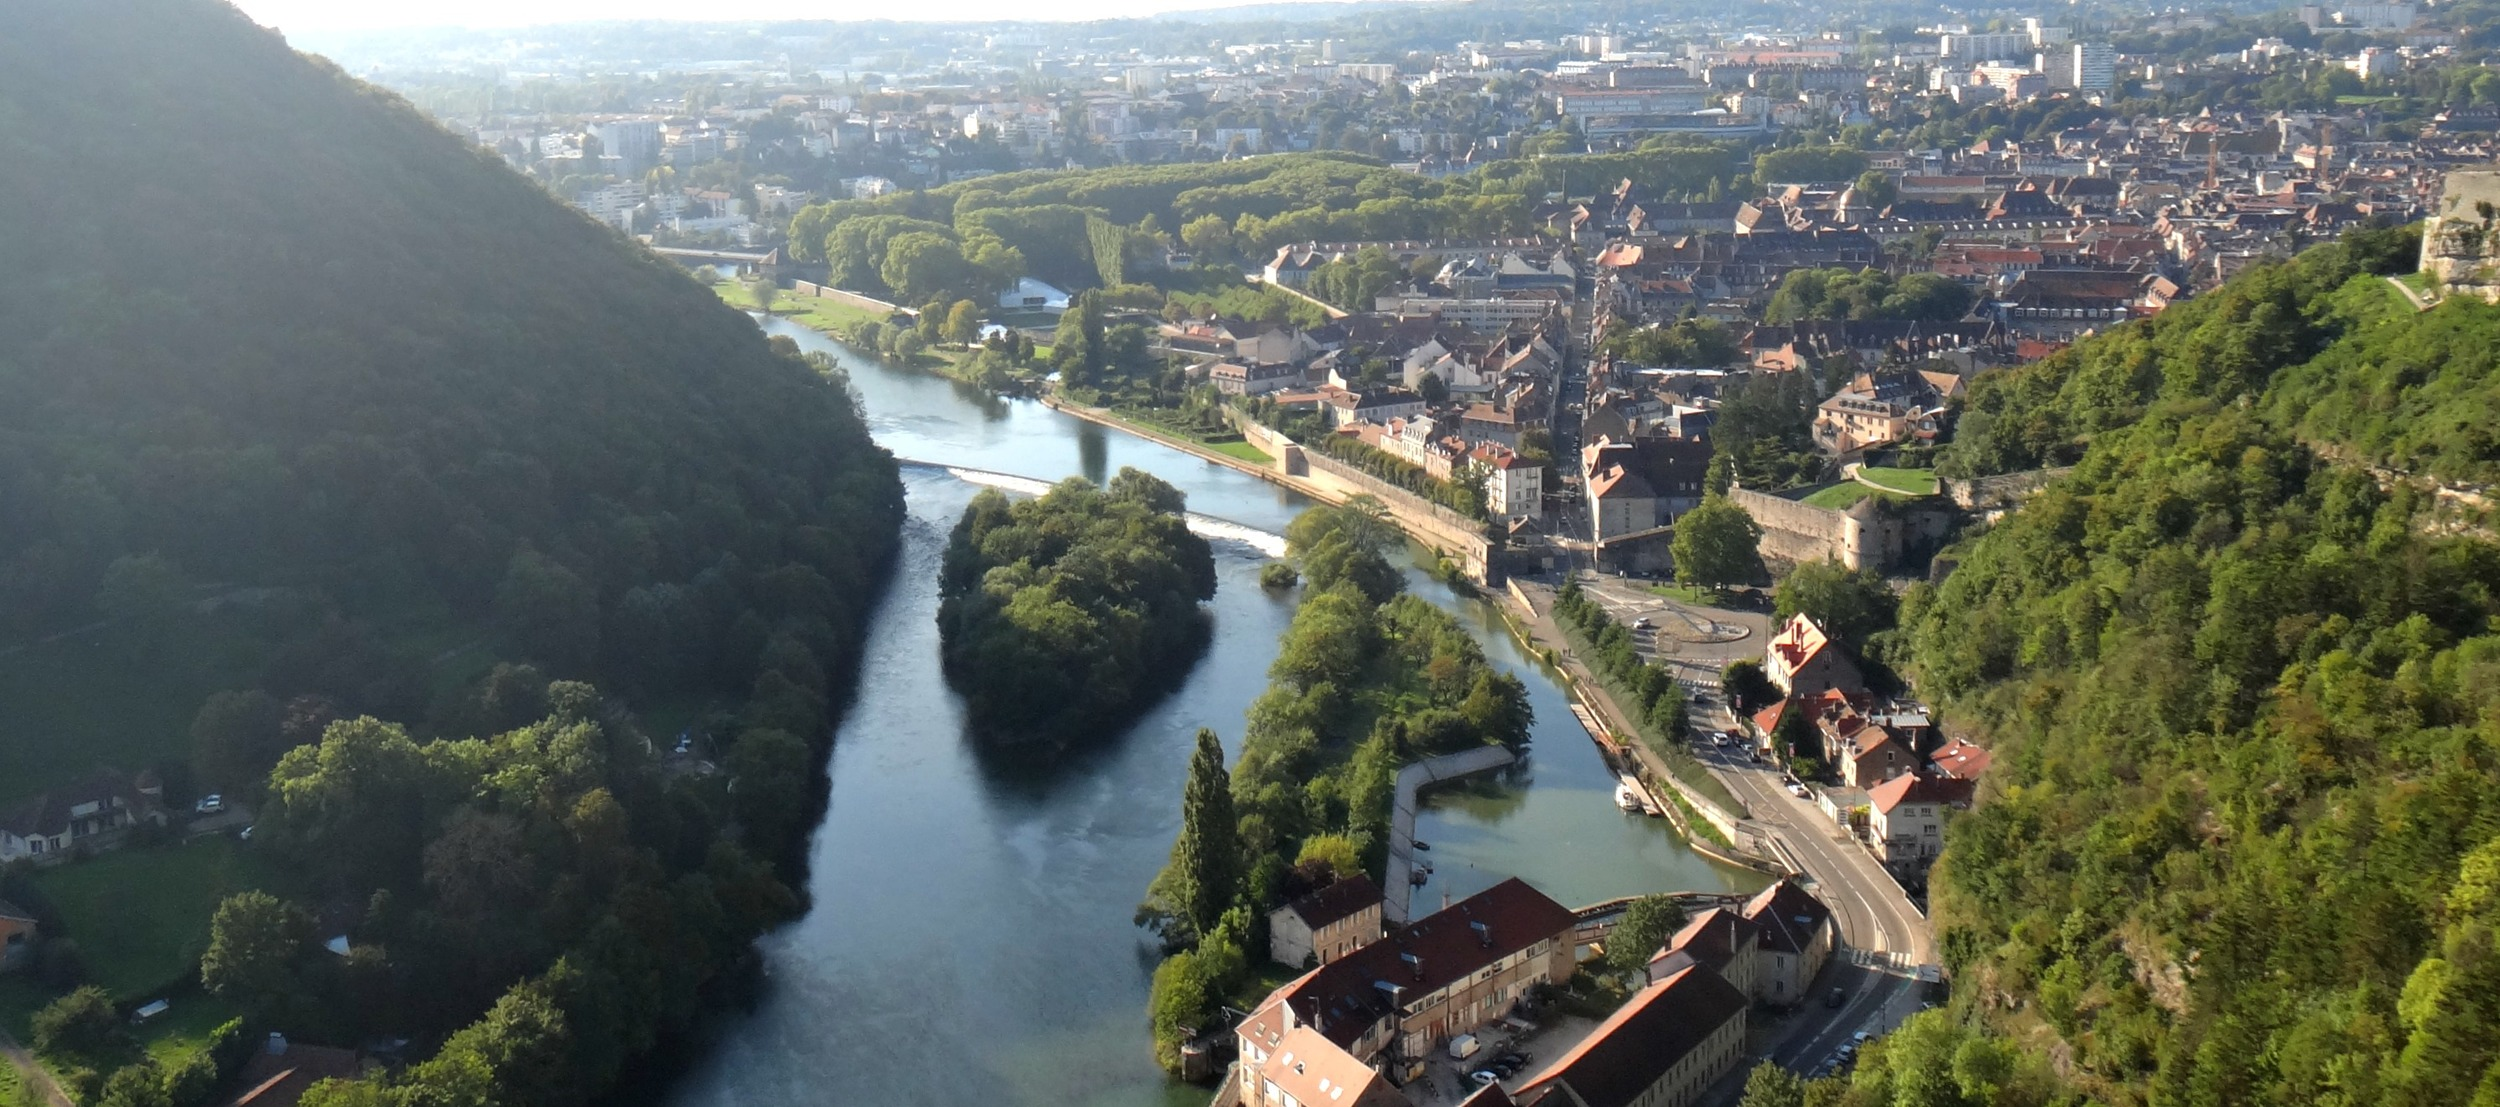 The view from theCitadel of Besancon